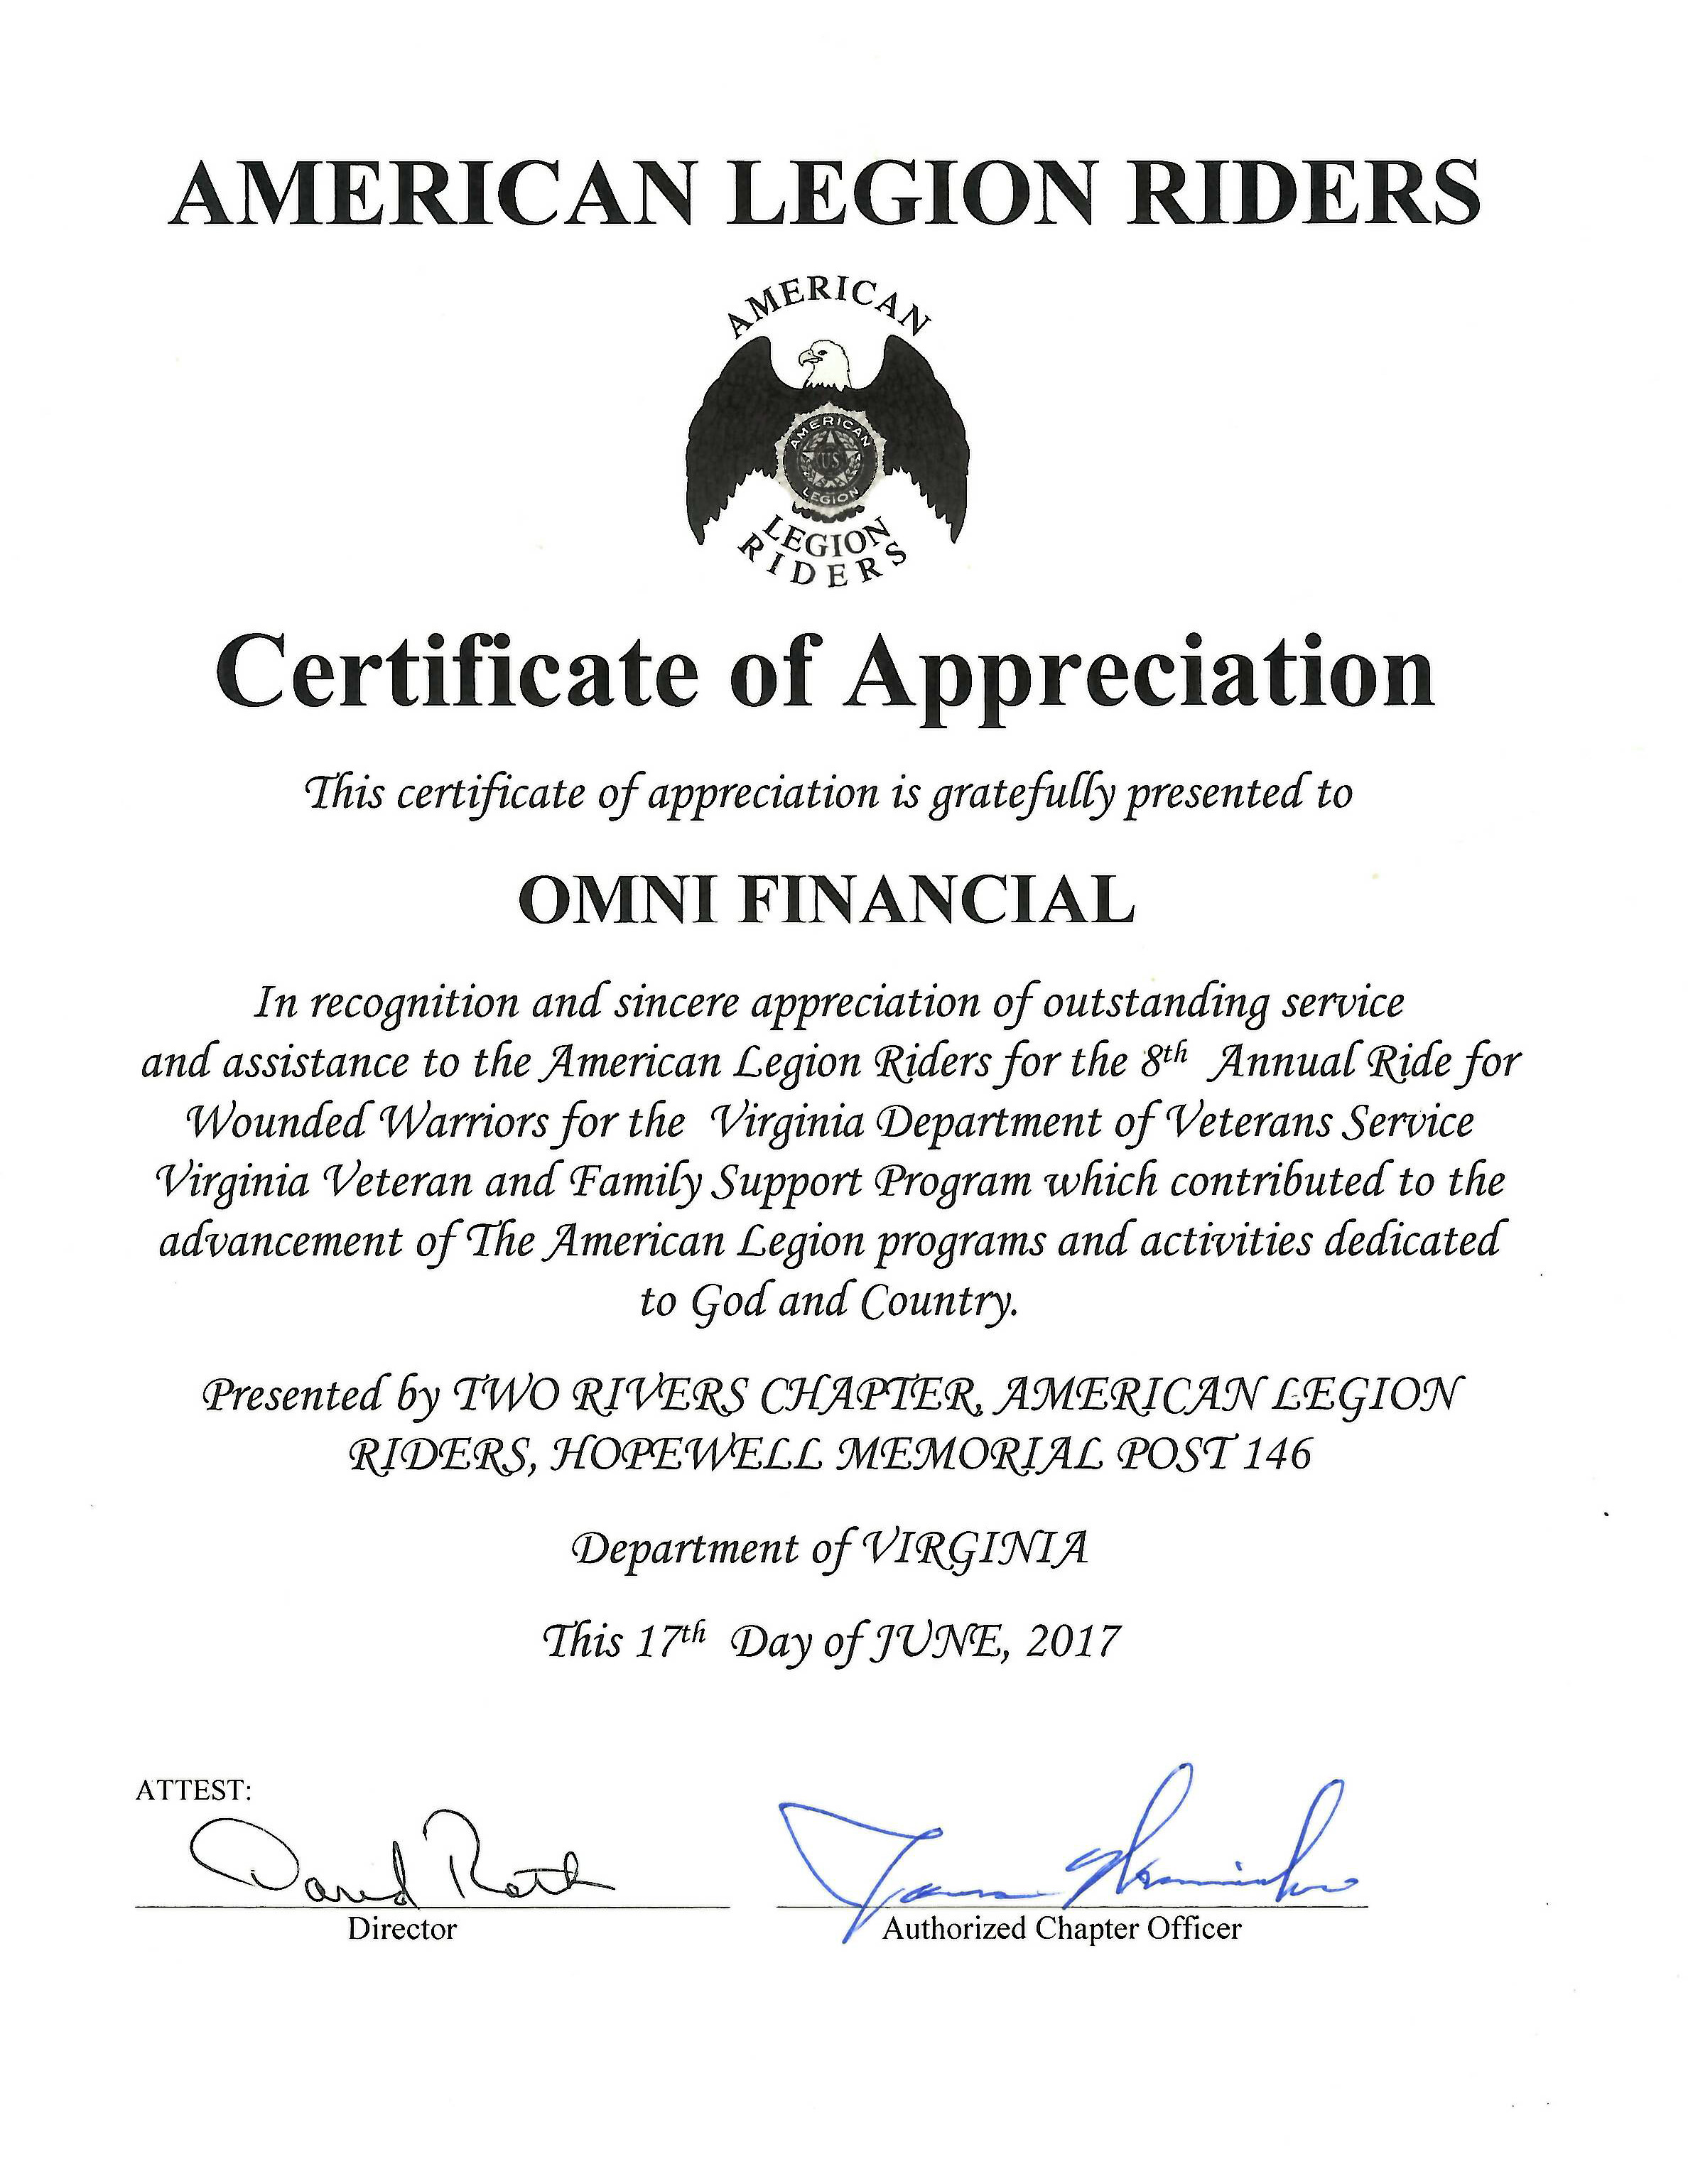 Accolades Archive - Page 6 of 17 - Omni Financial®